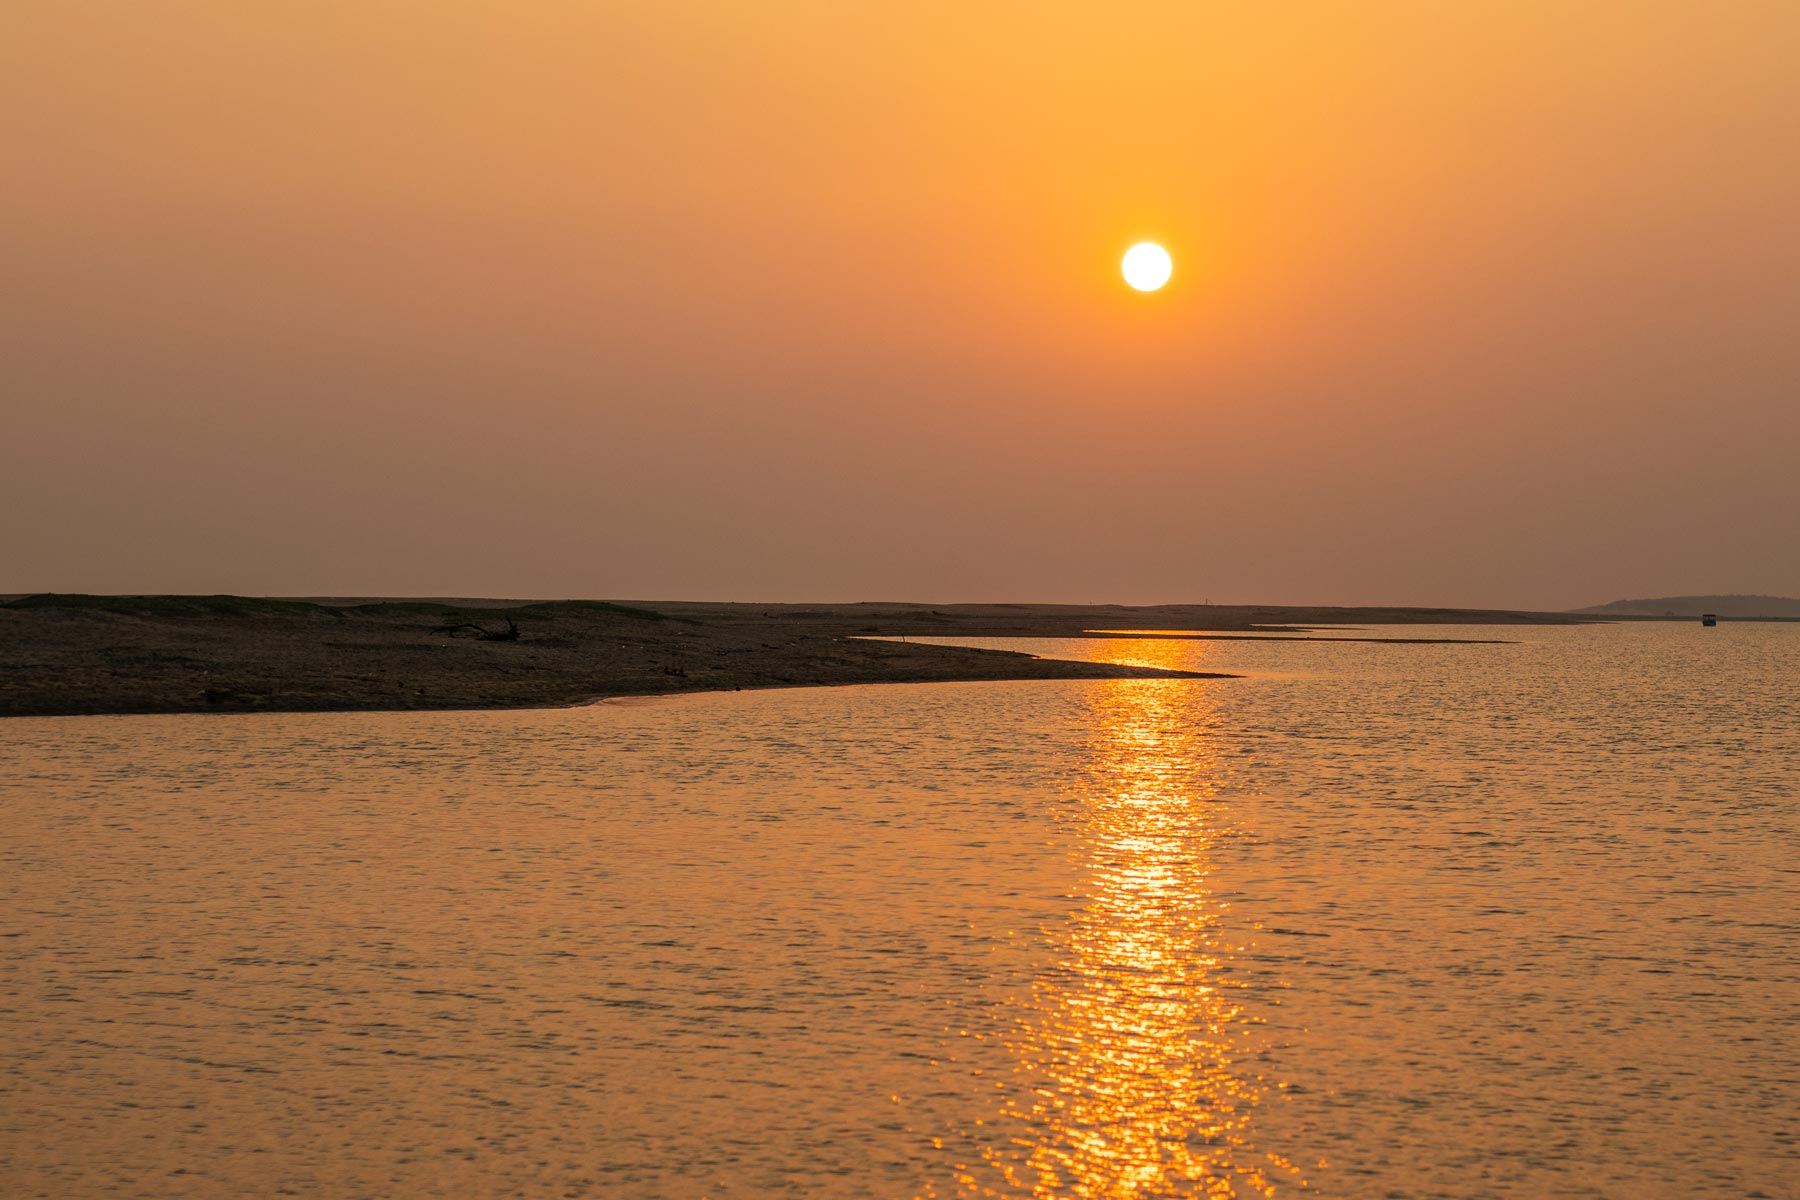 sunset-at-ramachandi-beach